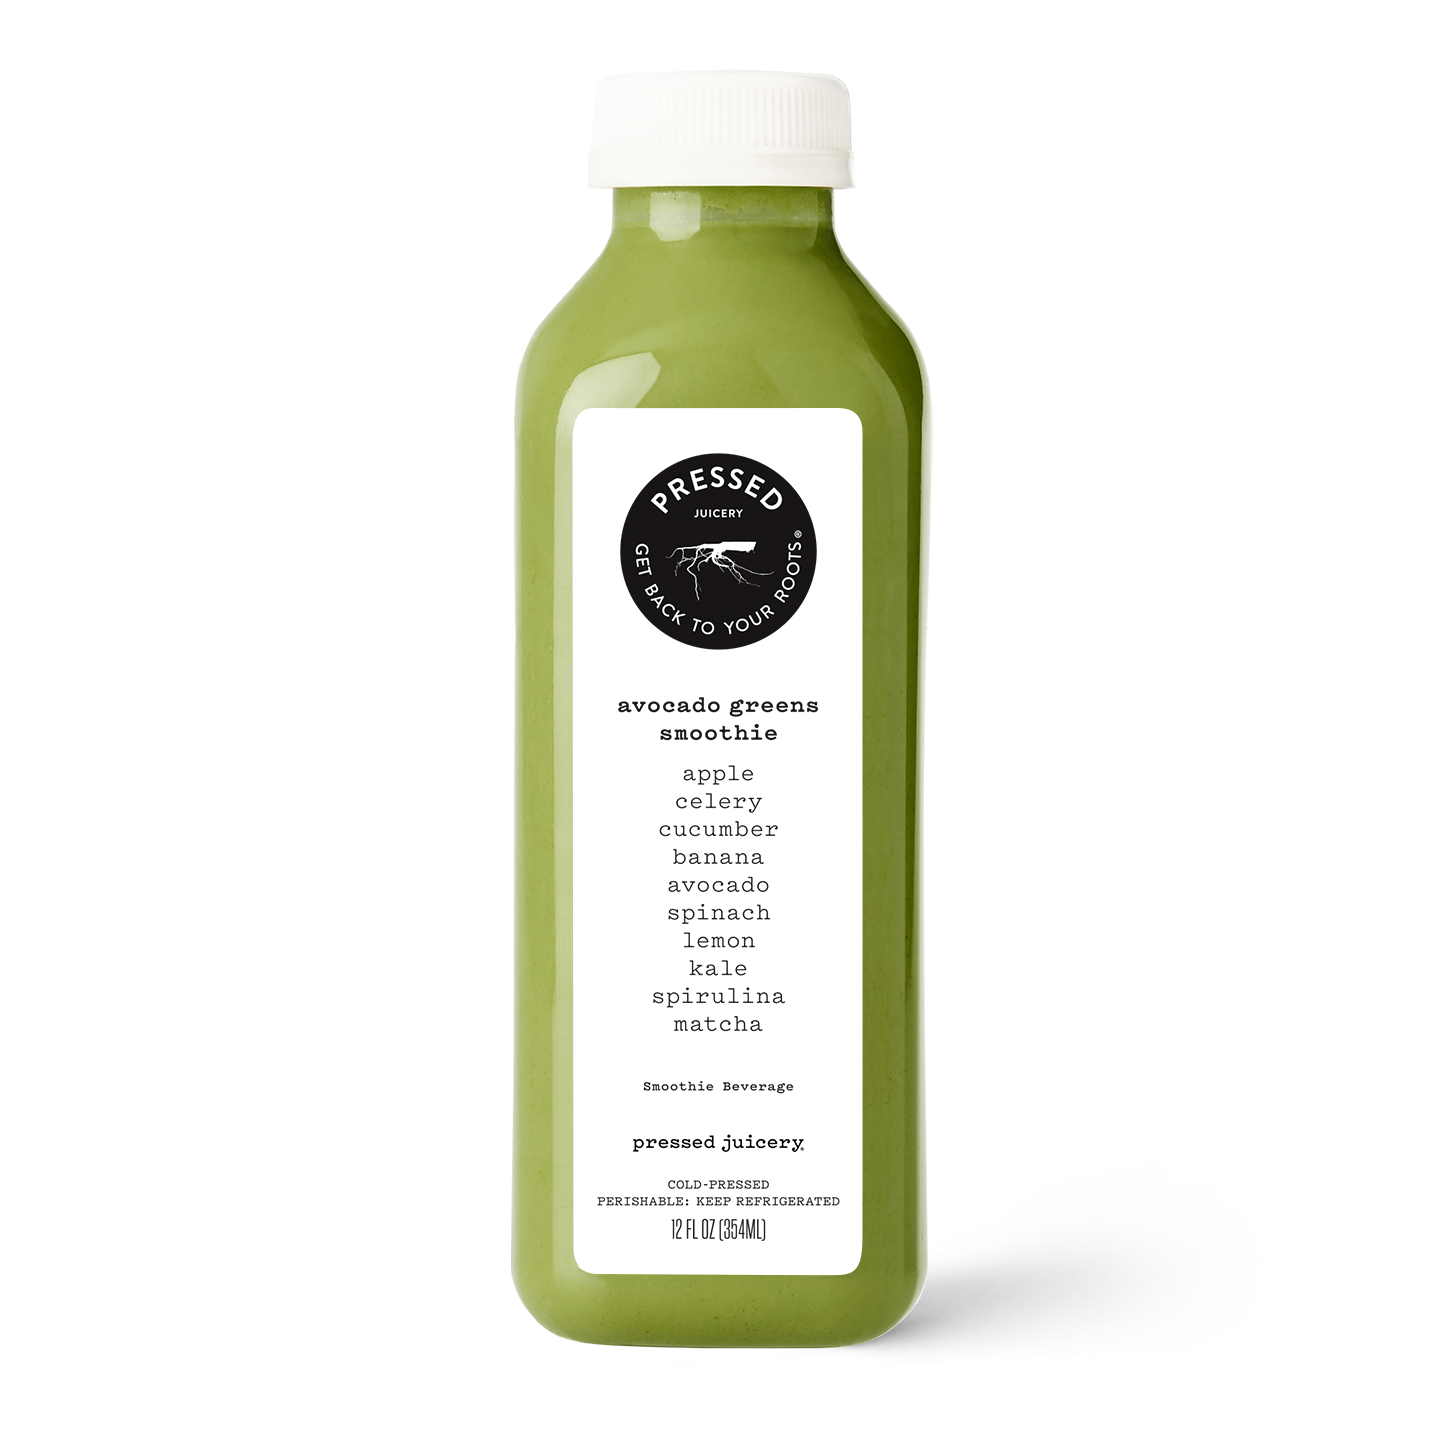 12oz Avocado Greens Smoothie product image